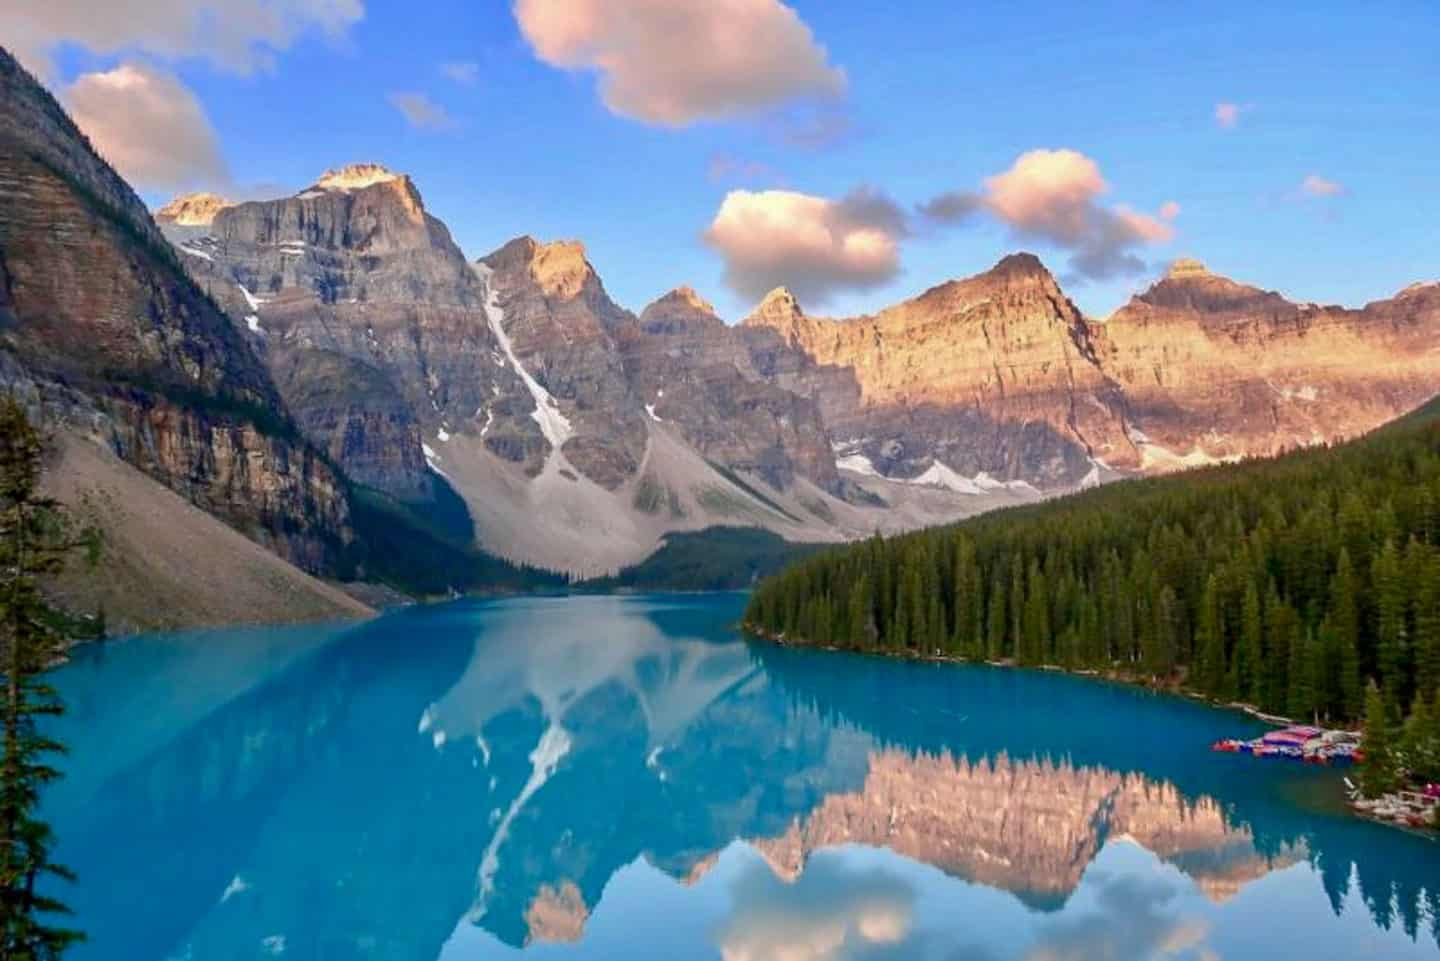 Banff National Park is one of the best national parks in Canada